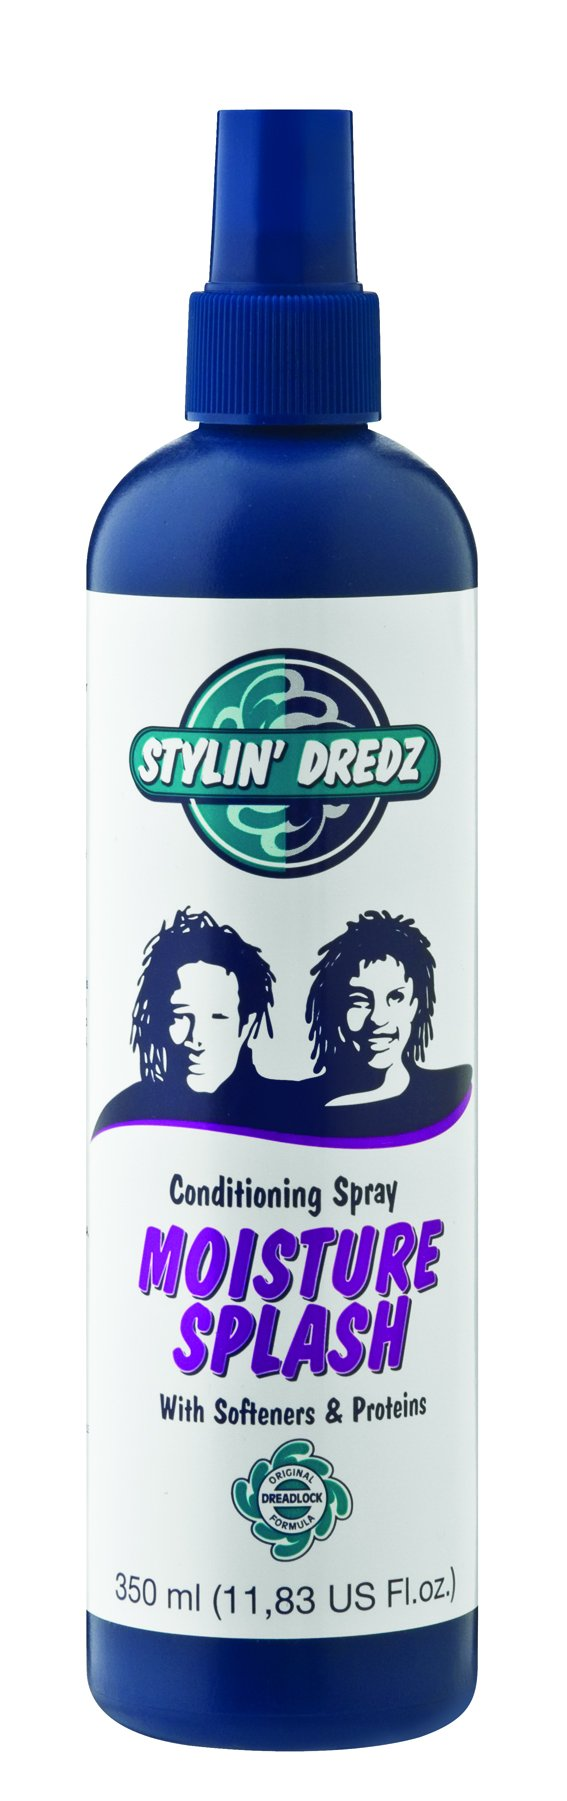 Stylin' Dredz Moisture Splash Conditioning Spray 350ml